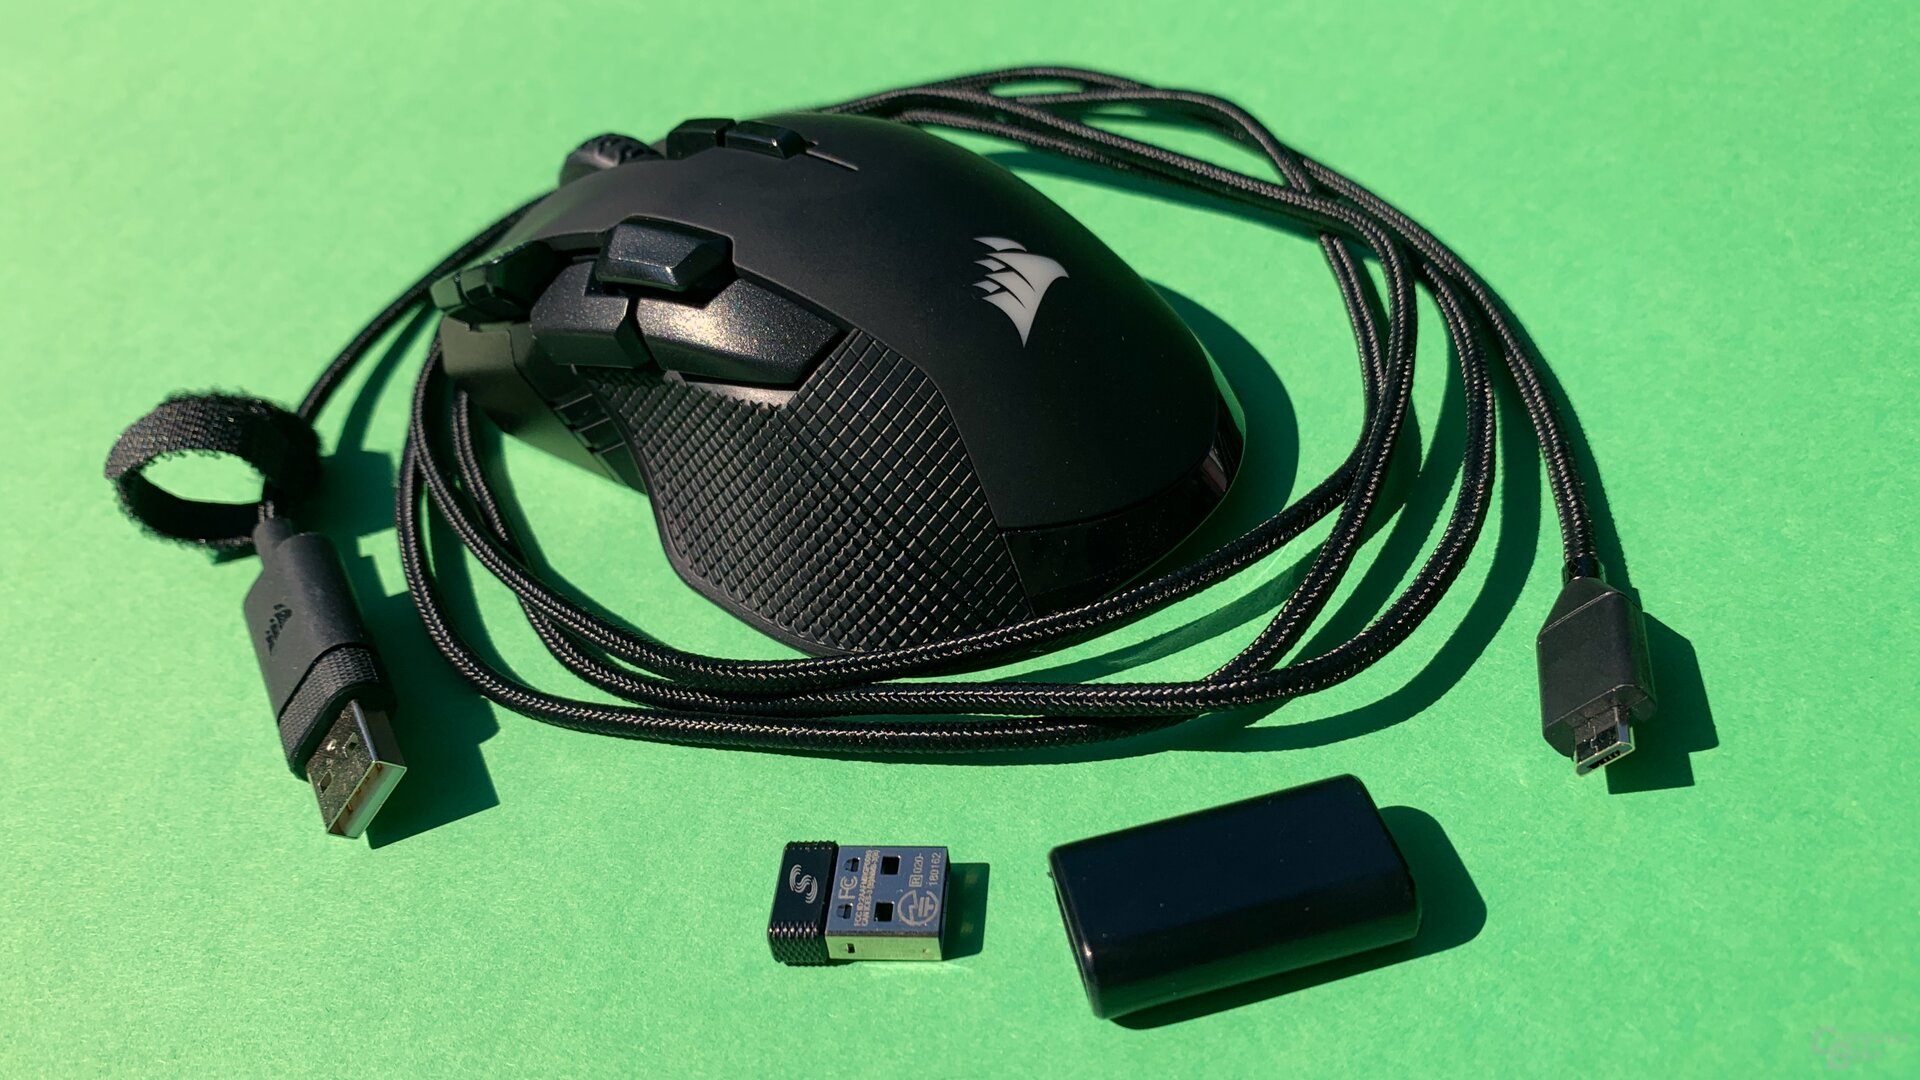 Lieferumfang der Ironclaw RGB Wireless mit Funk-Dongle und Adapter